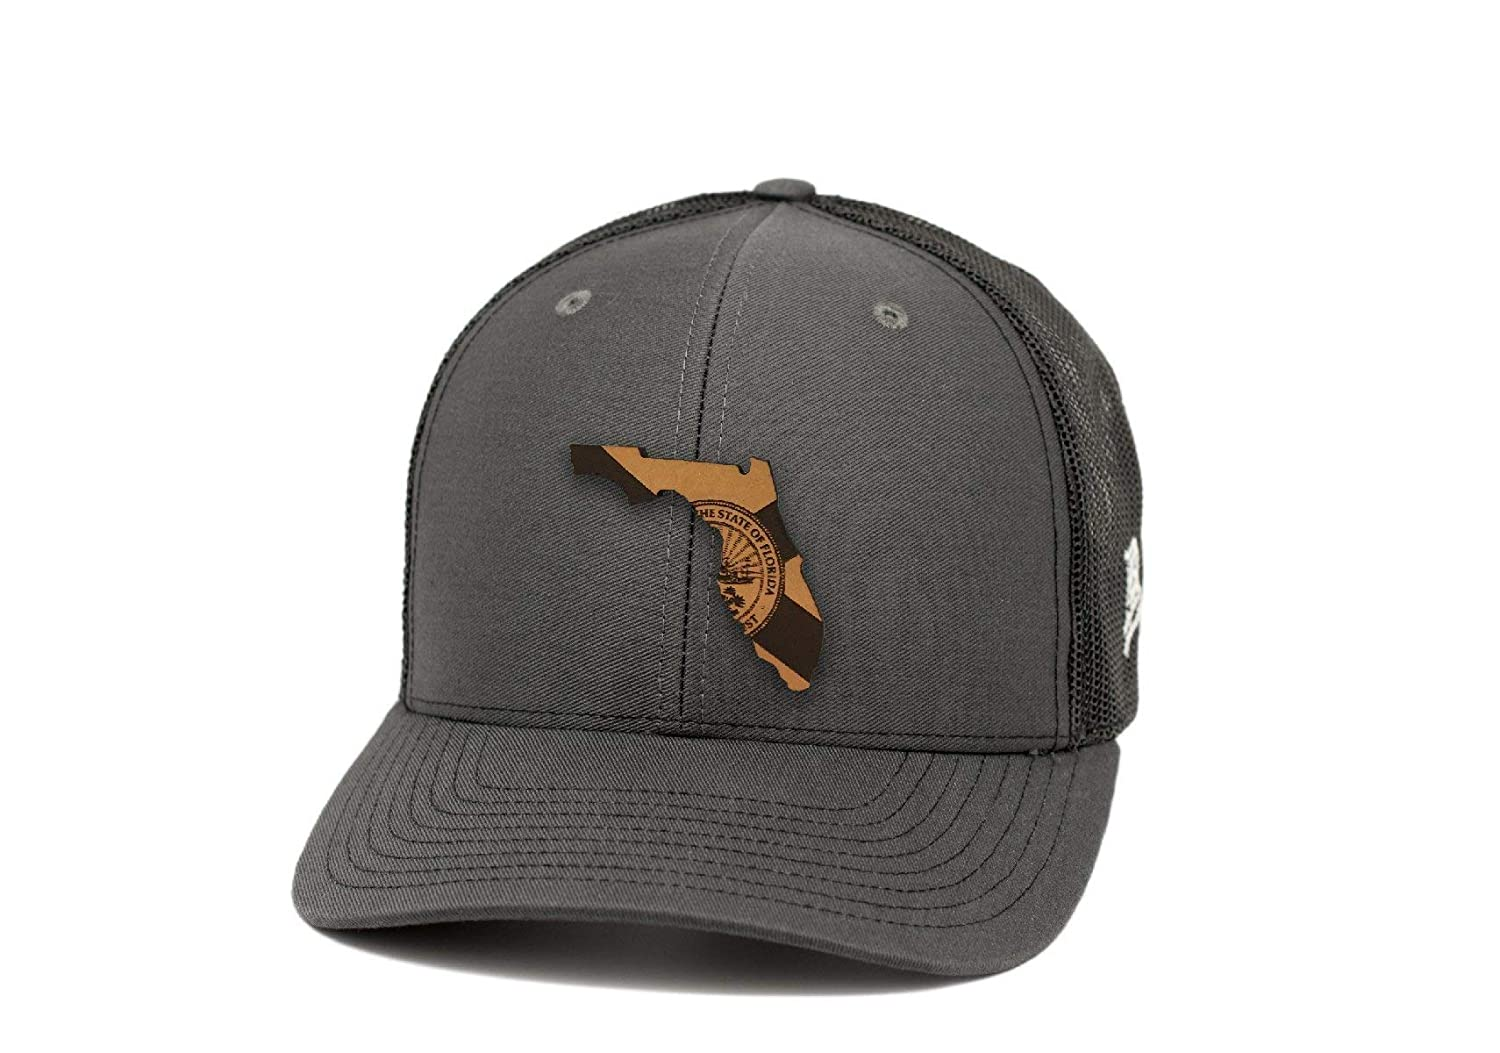 Branded Bills The 27 Curved Trucker